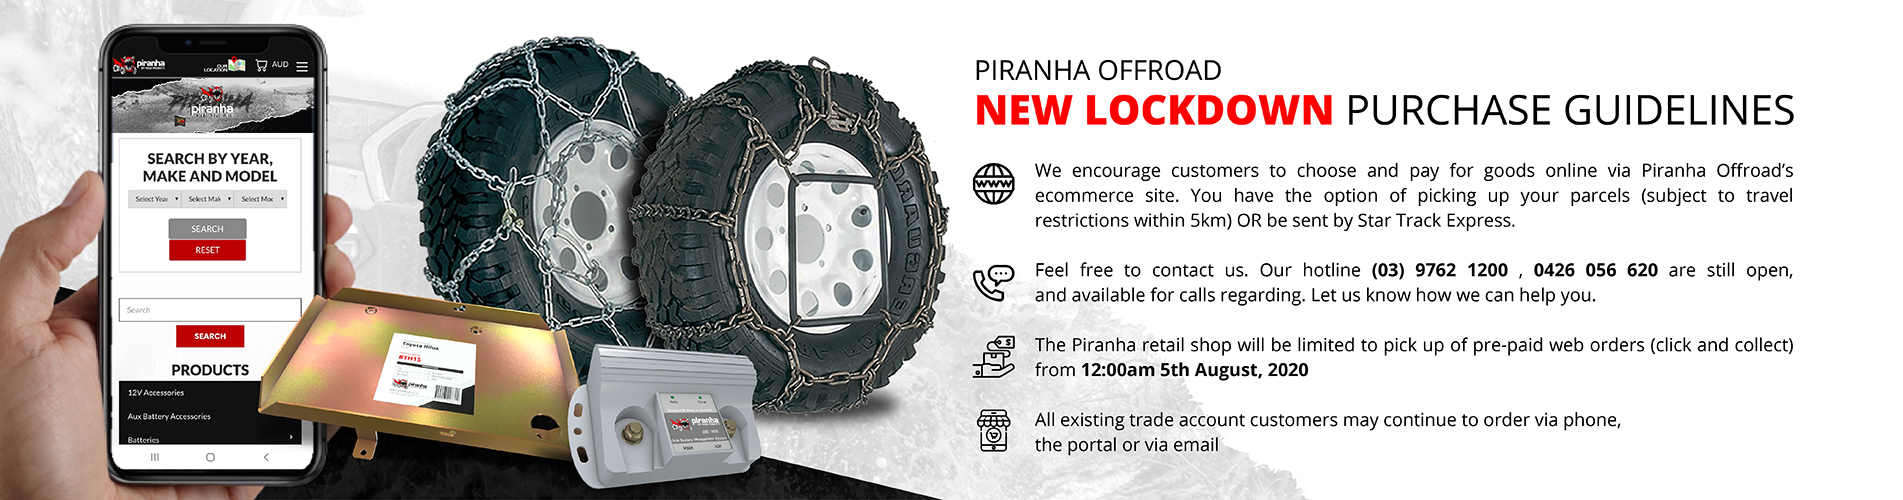 Piranha Off Road Purchase Guidelines